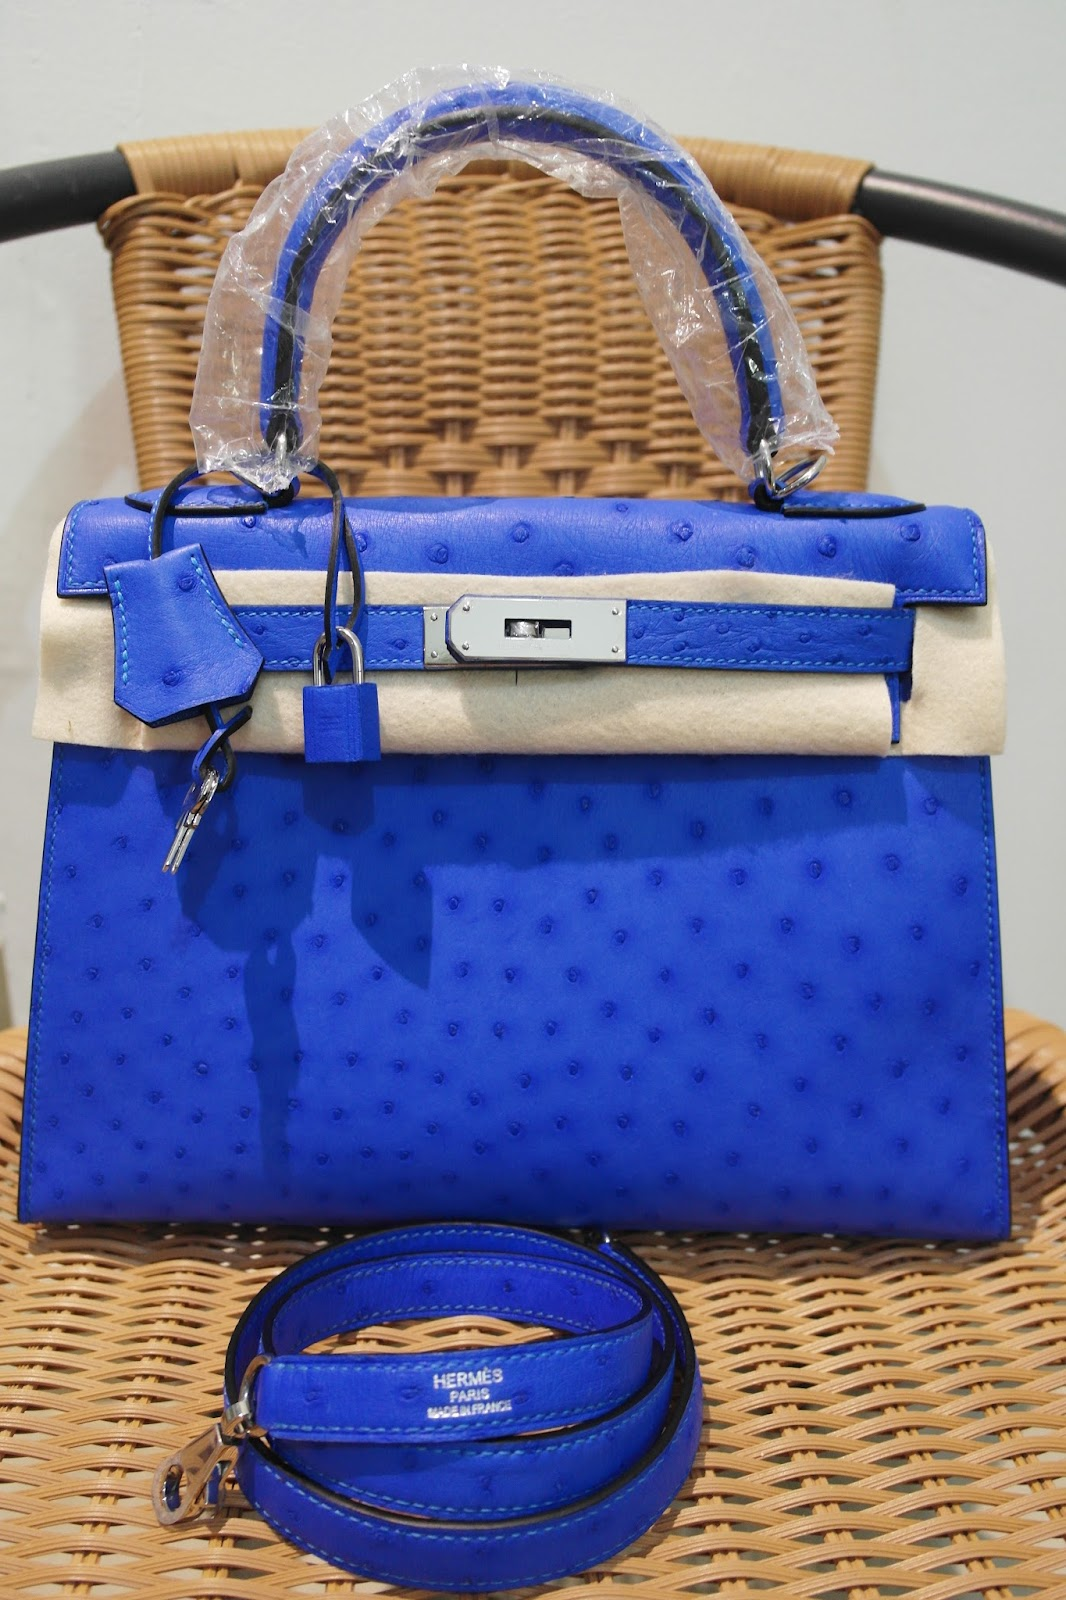 ... low price hermes kelly 28 k28 ostrich leather blue hydra color code t7  fef89 5363b ac3abda8e1643